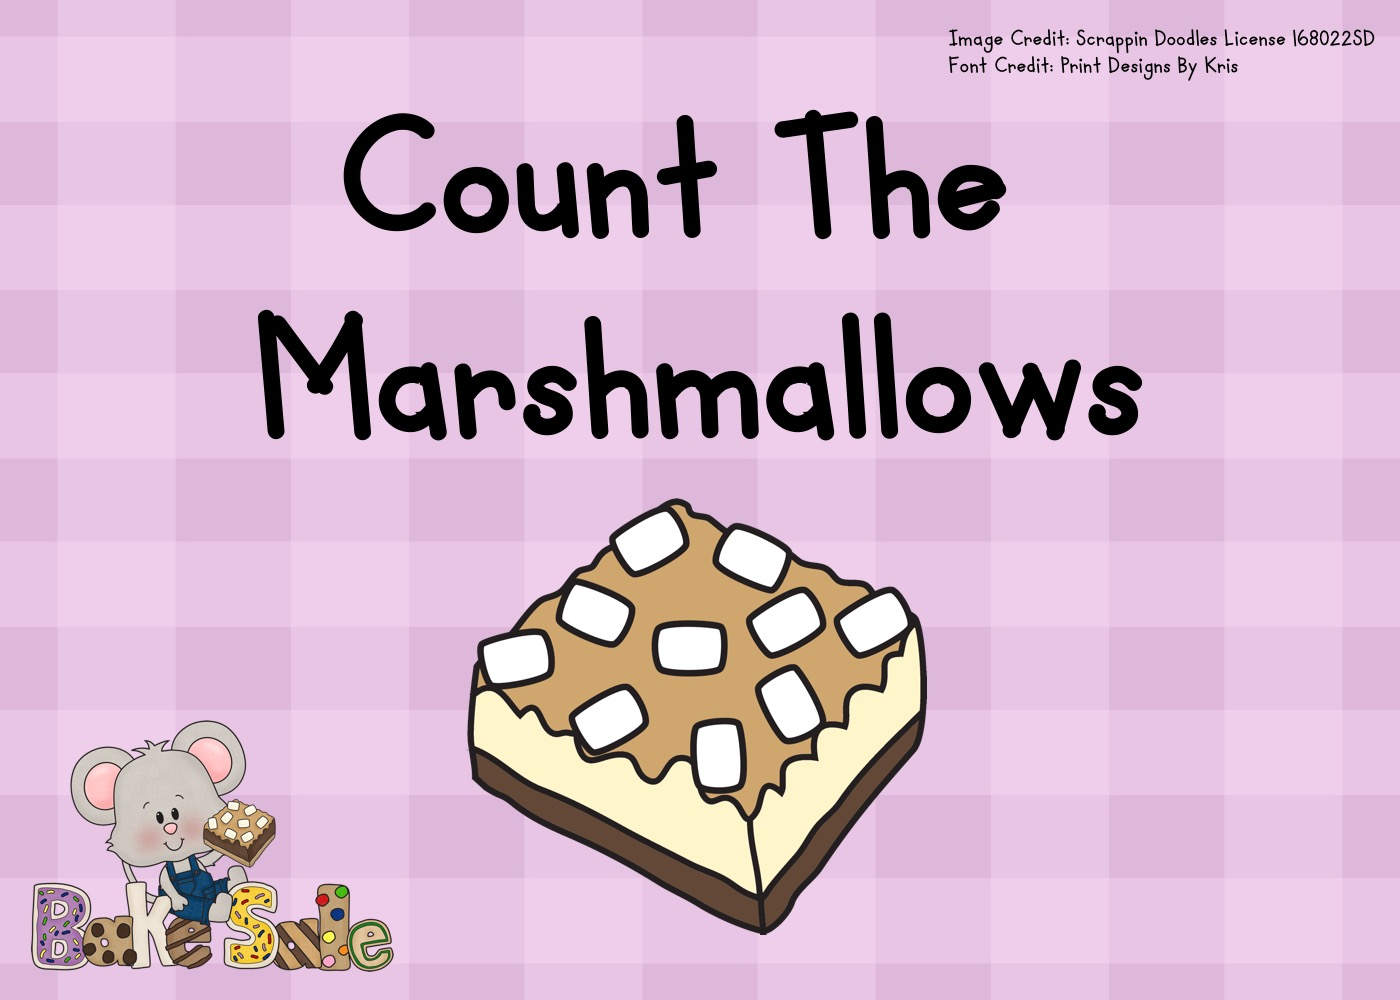 Count The Marshmallows 1-10